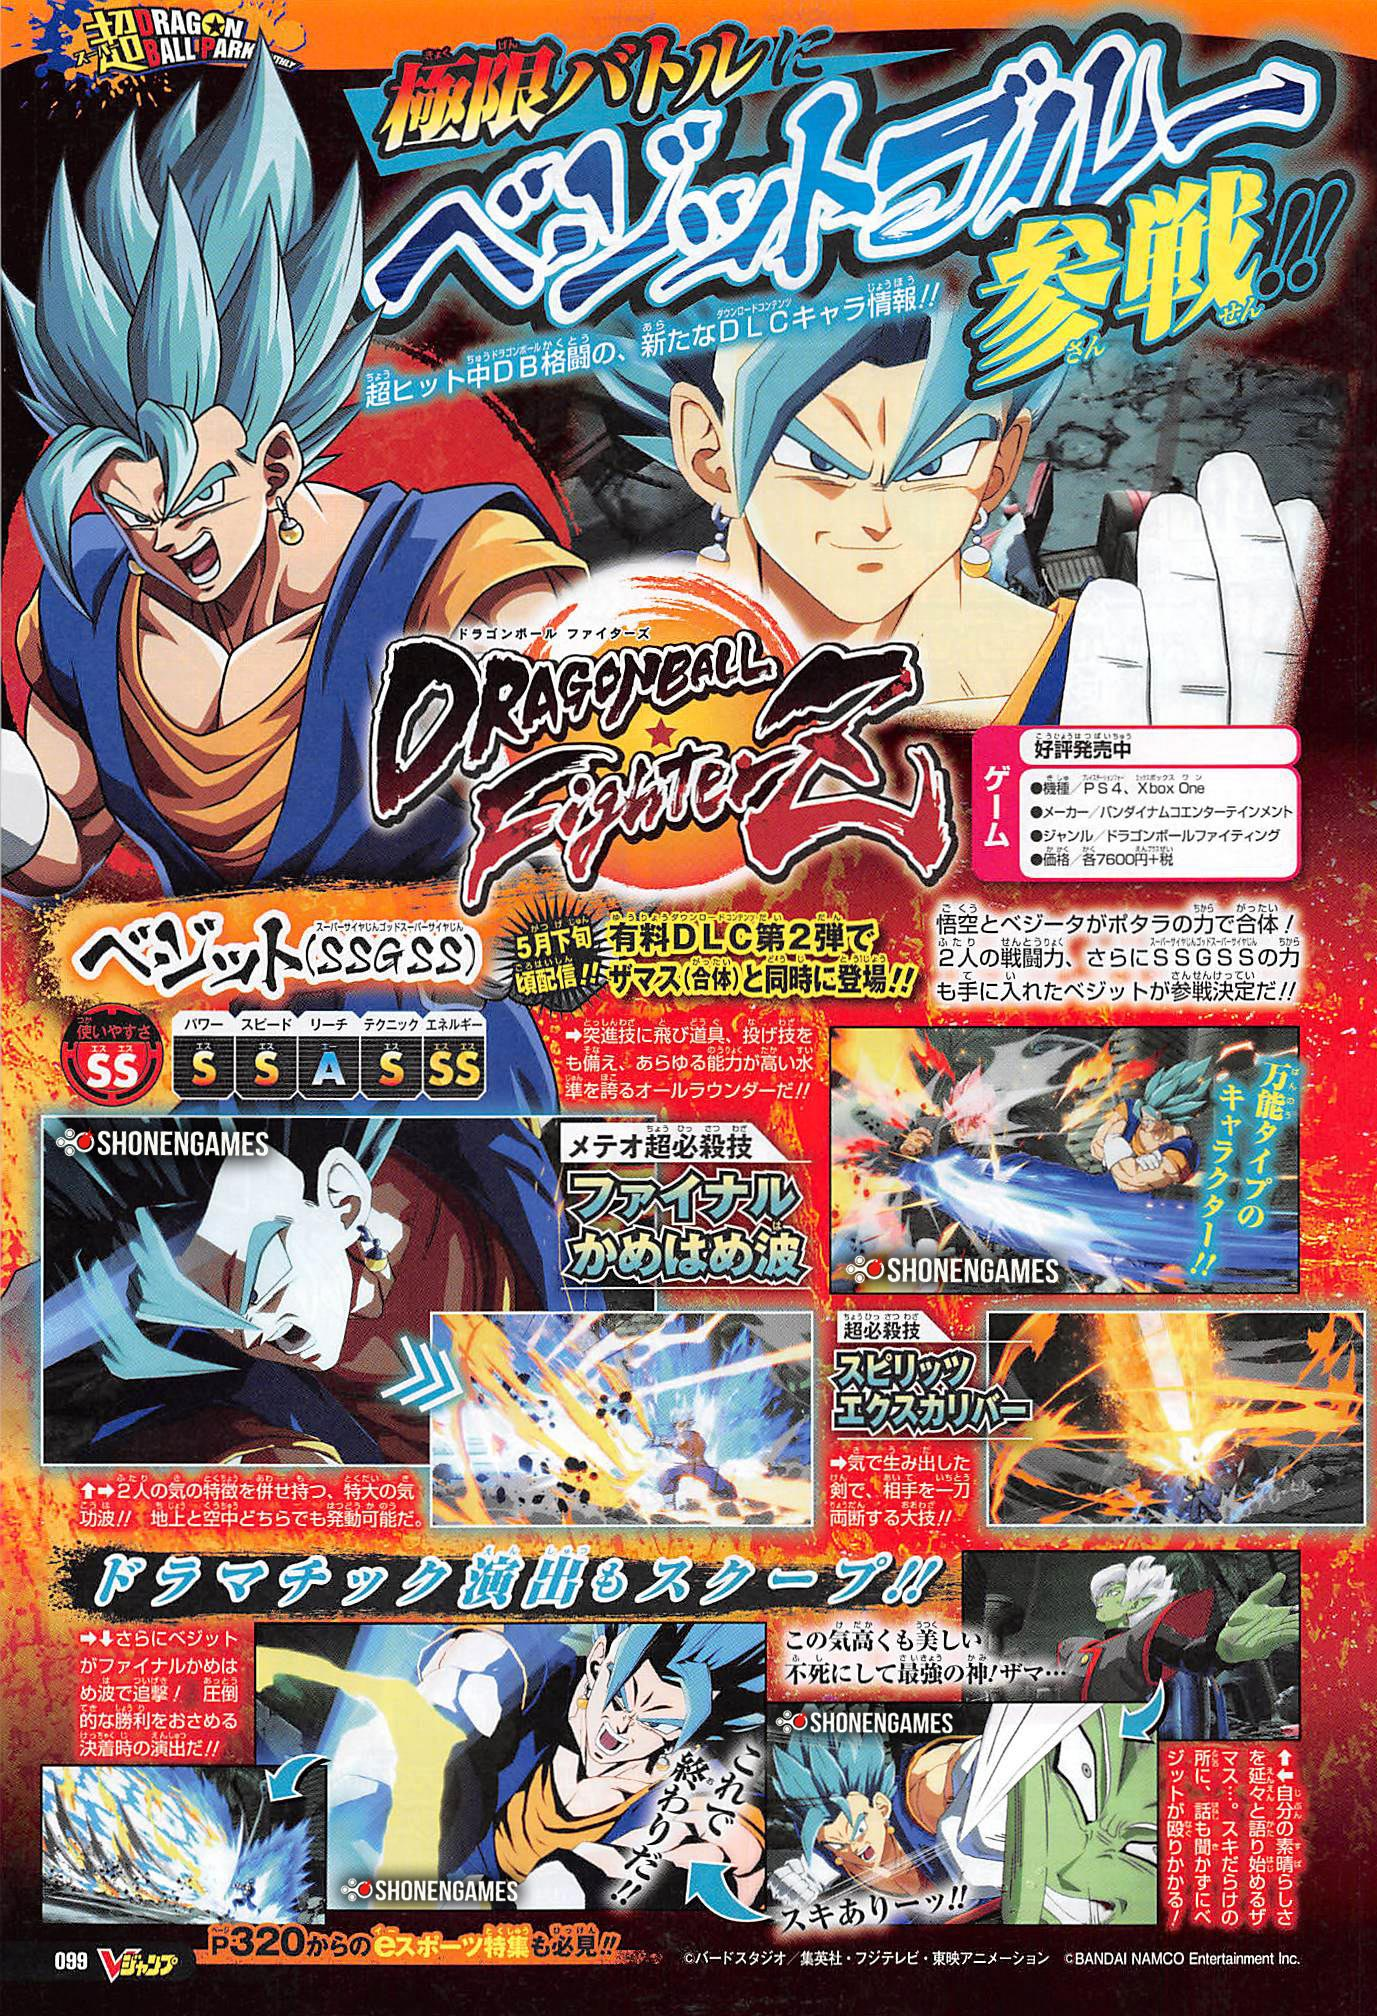 Vegito Blue Dragon Ball FighterZ V-Jump scan 1 out of 1 image gallery